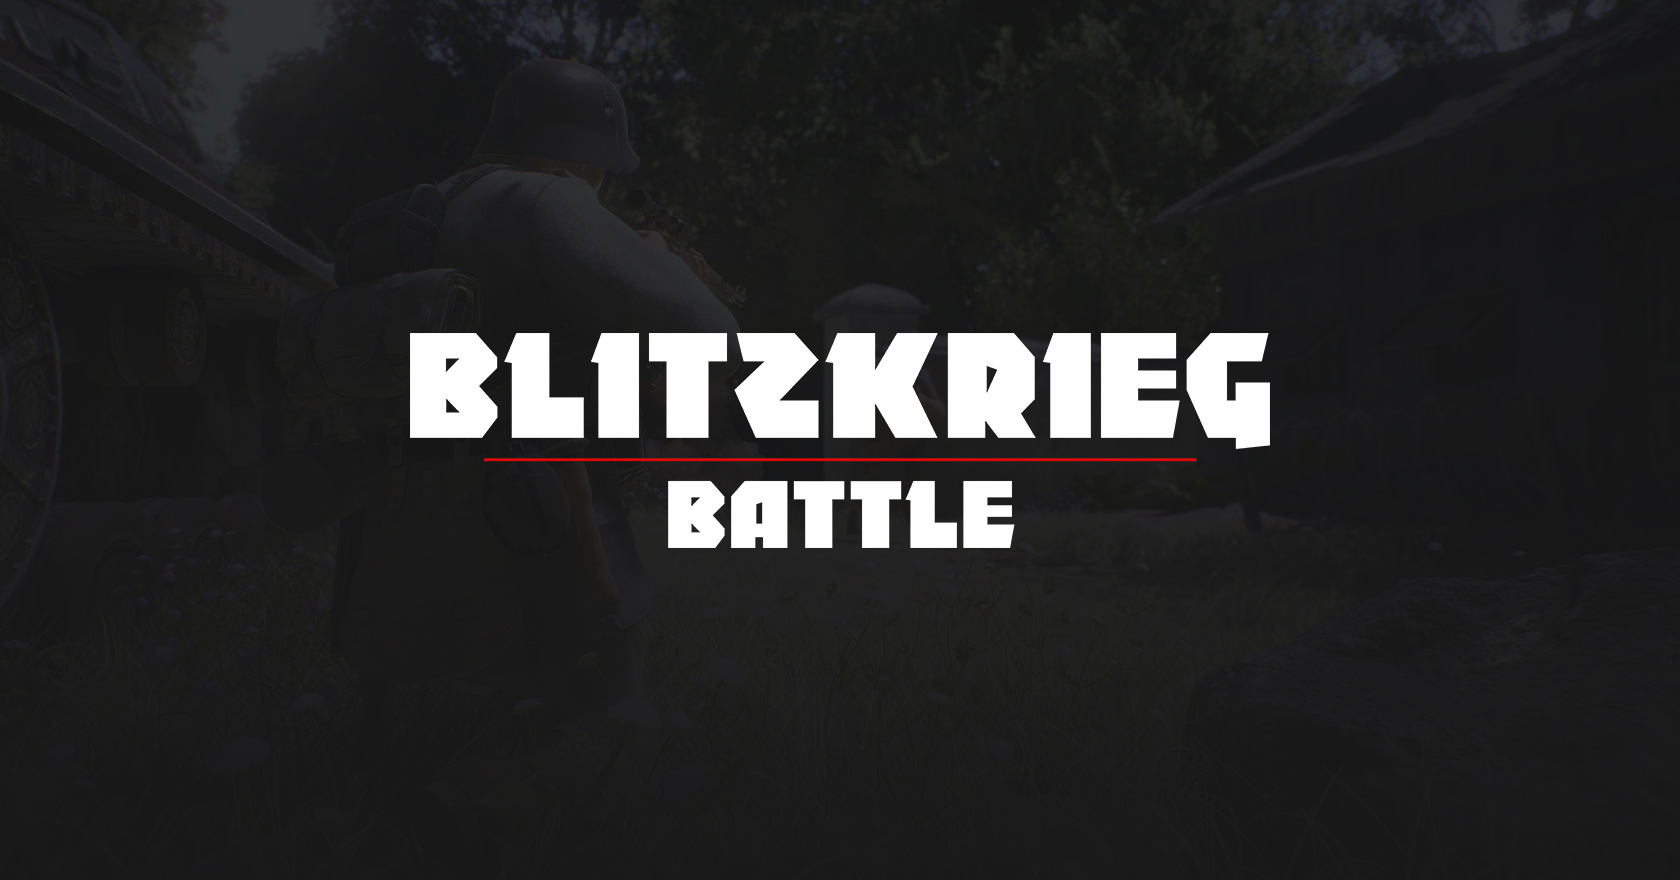 Blitzkrieg battle